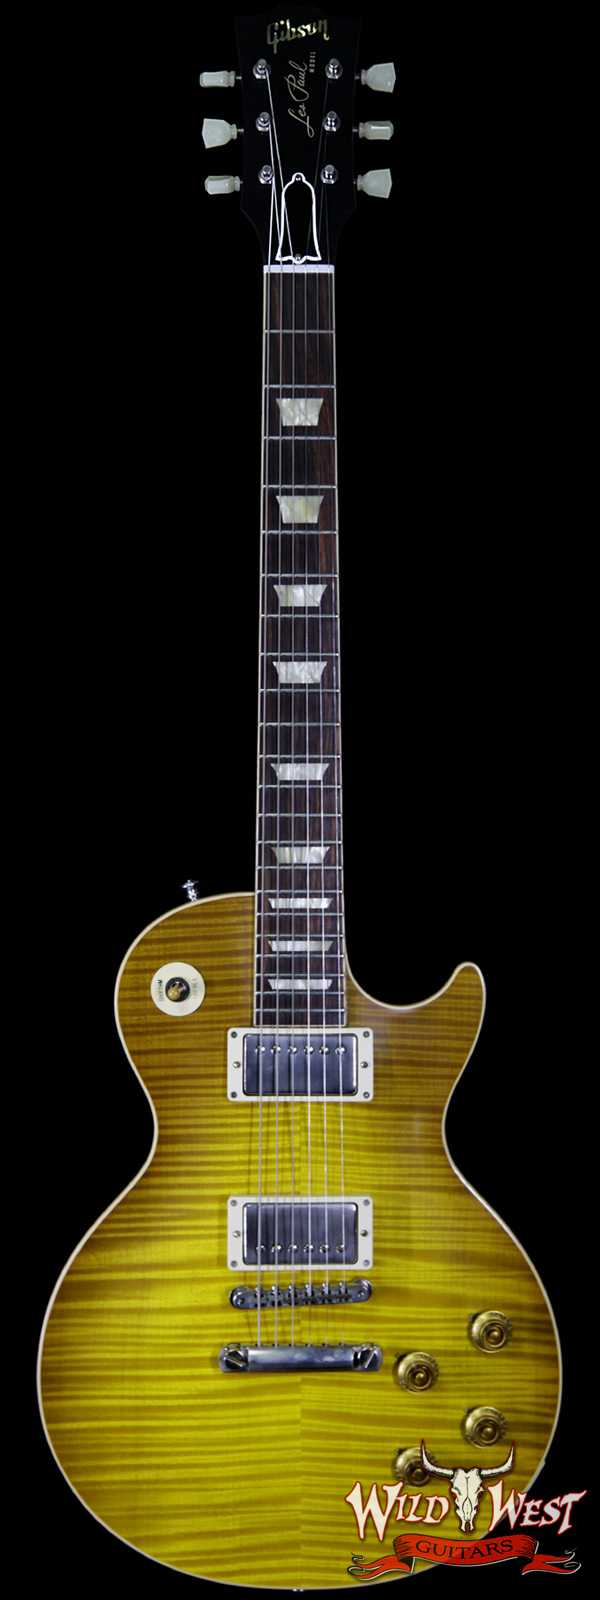 Gibson Custom Shop M2M Hand Selected Kill Top 60th Anniversary 1959 Les Paul Standard VOS Honey Lemon Fade 8.55 lbs